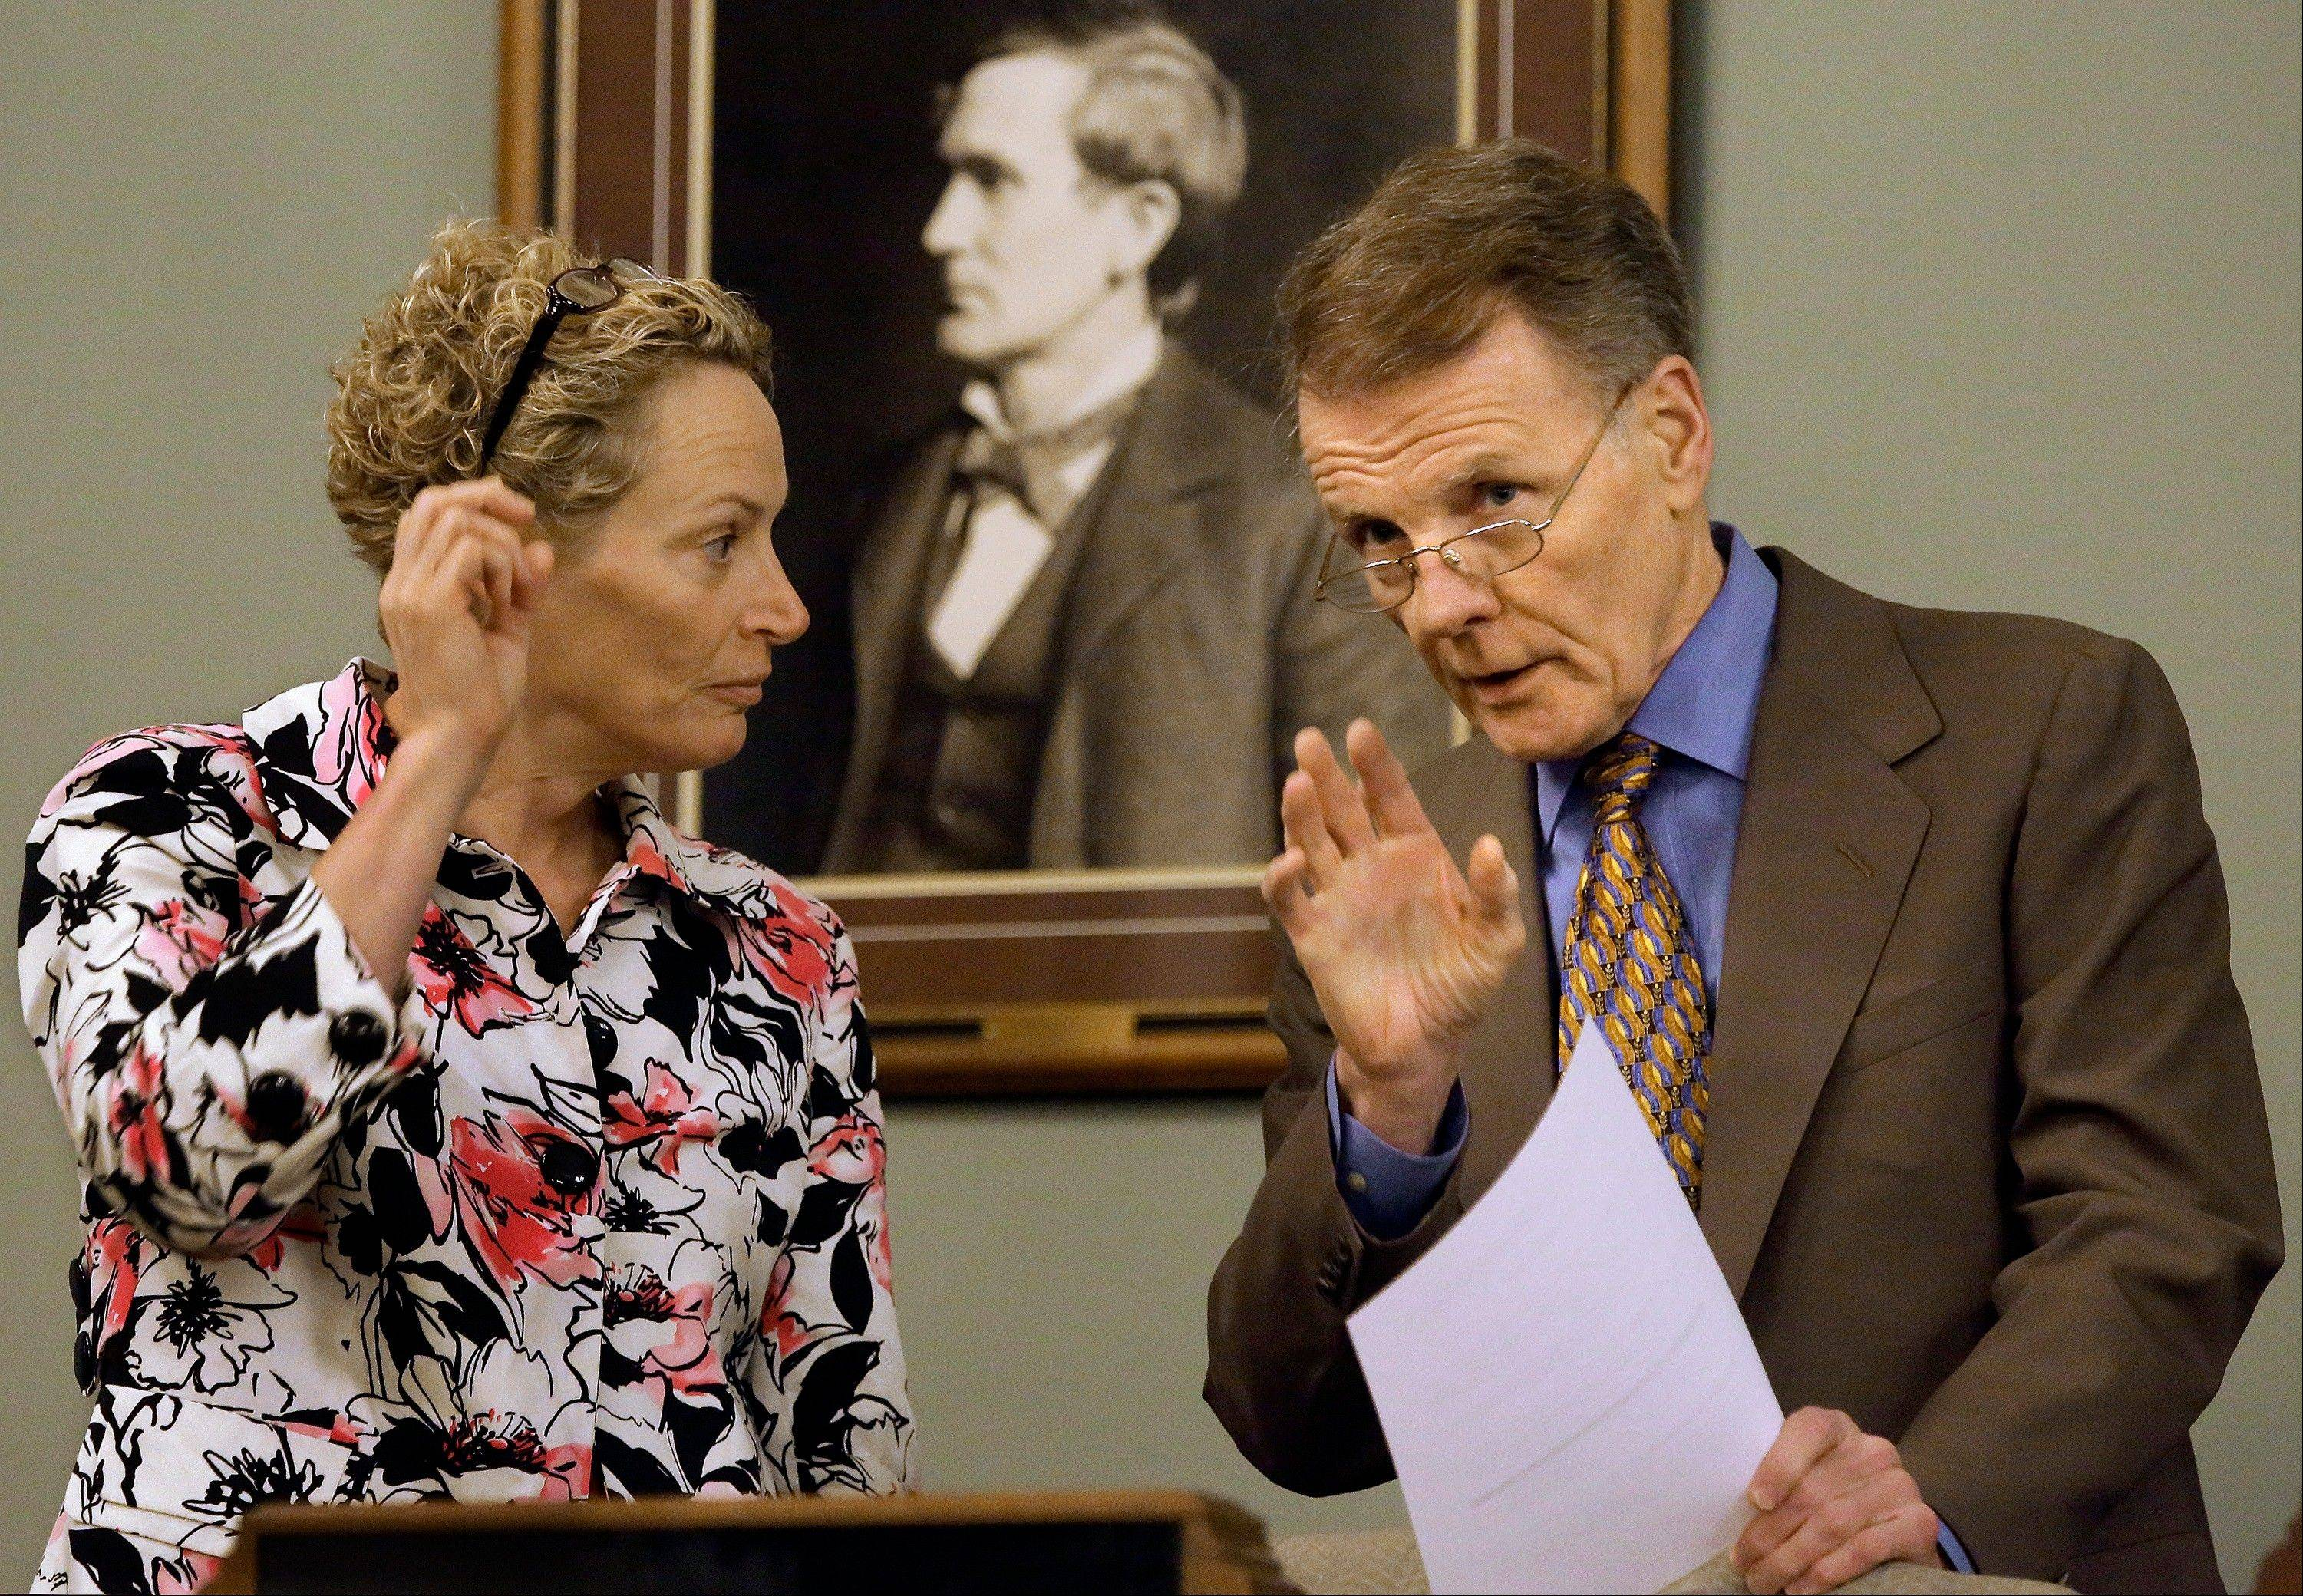 Speaker of the House Michael Madigan, a Chicago Democrat, talks with Rep. Elaine Nekritz, a Northbrook Democrat, during a House committee hearing on pension legislation Thursday at the Illinois State Capitol.